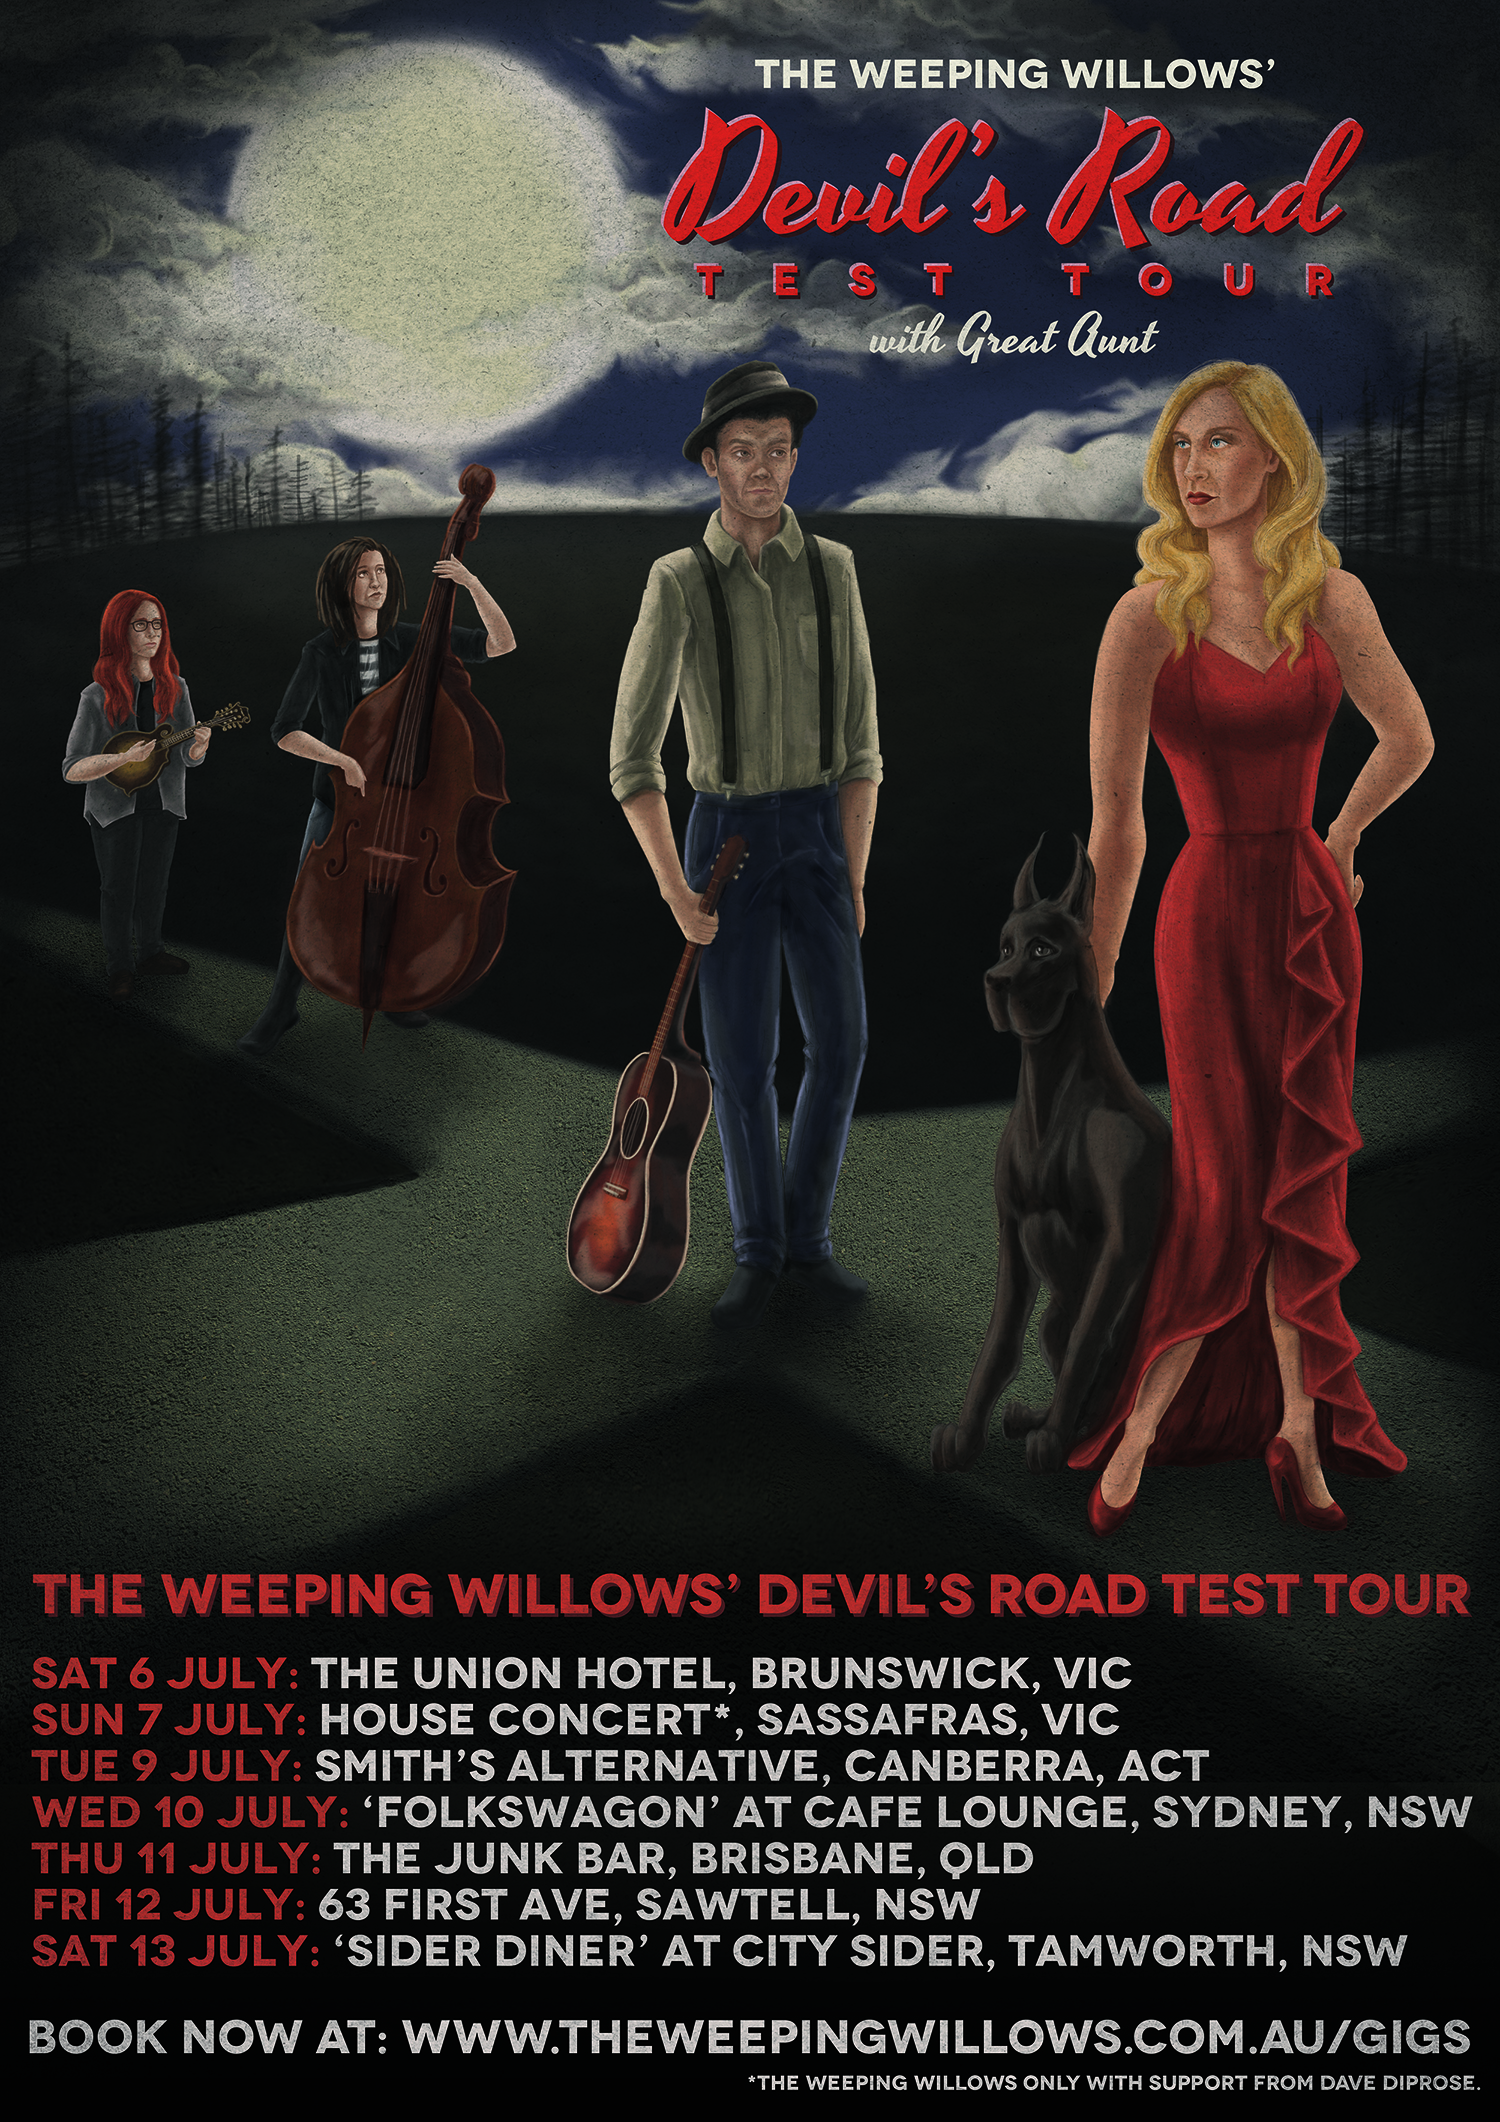 TheWeepingWillowsDevilsRoad_Poster_smallest.jpg